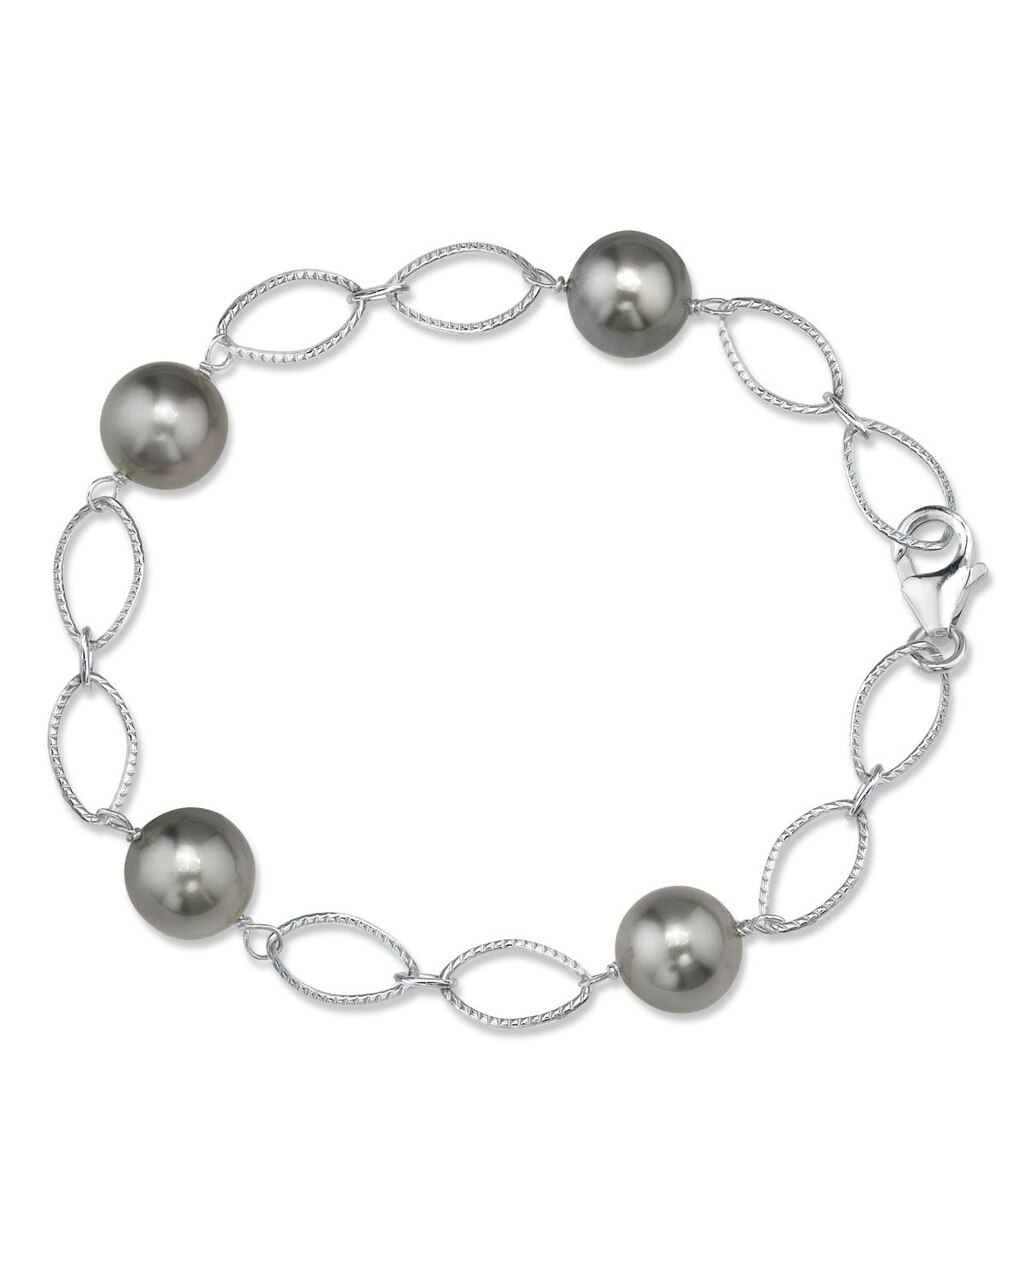 This exquisite bracelet features 9.0-10.0mm Tahitian South Sea pearls, handpicked for their radiant luster